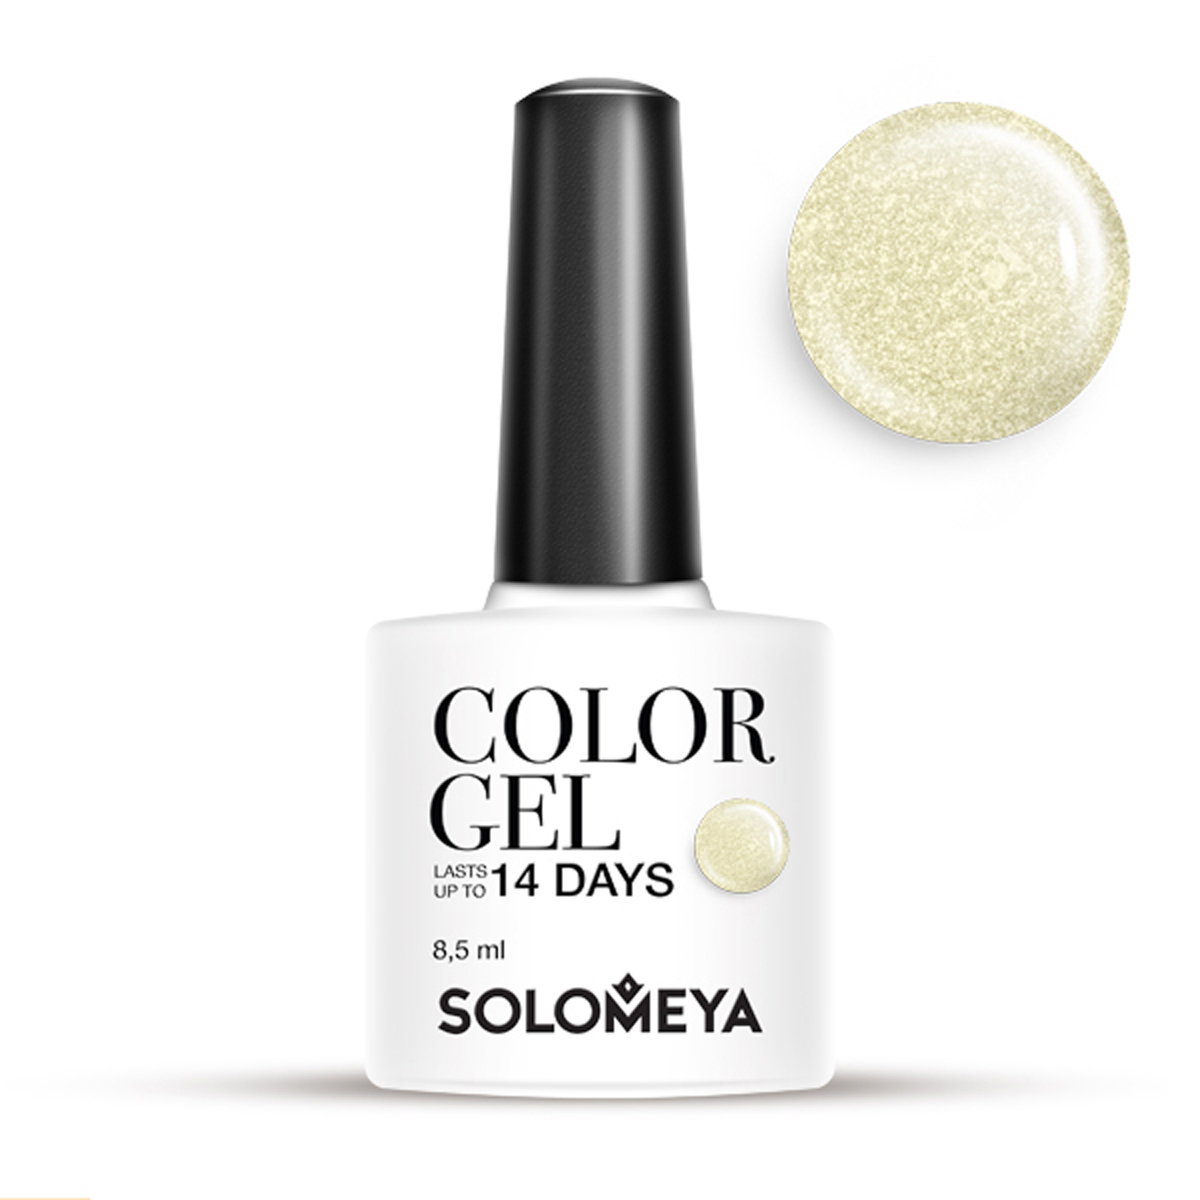 SOLOMEYA Гель-лак для ногтей SCG103 Селия / Color Gel Celia 8,5мл гель лаки solomeya гель лак color gel тон celia scg103 селия